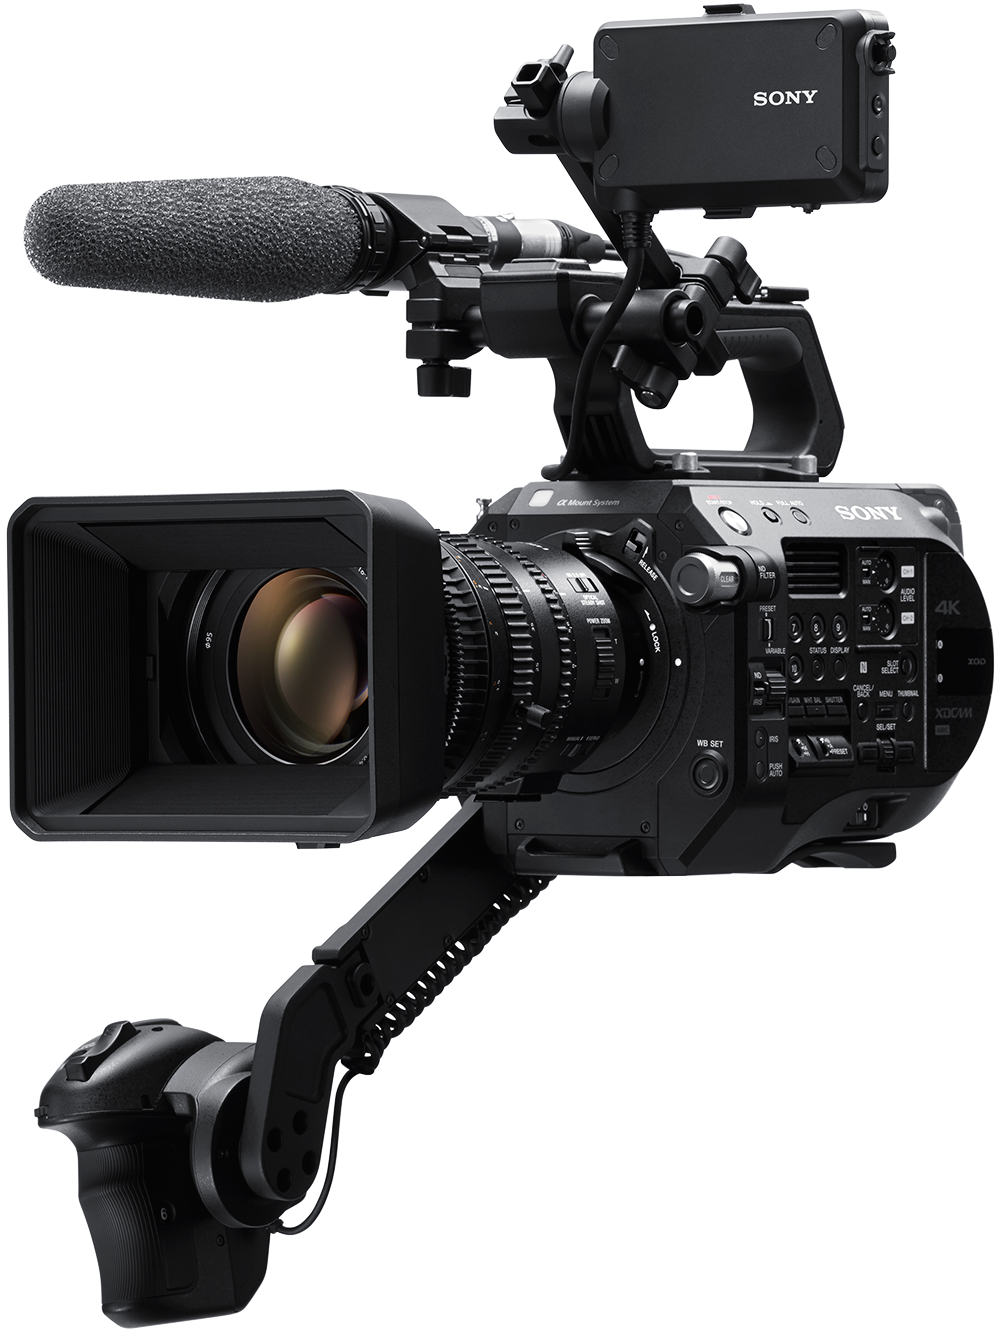 Sony PXW-FS7M2 Kit + 18-110G